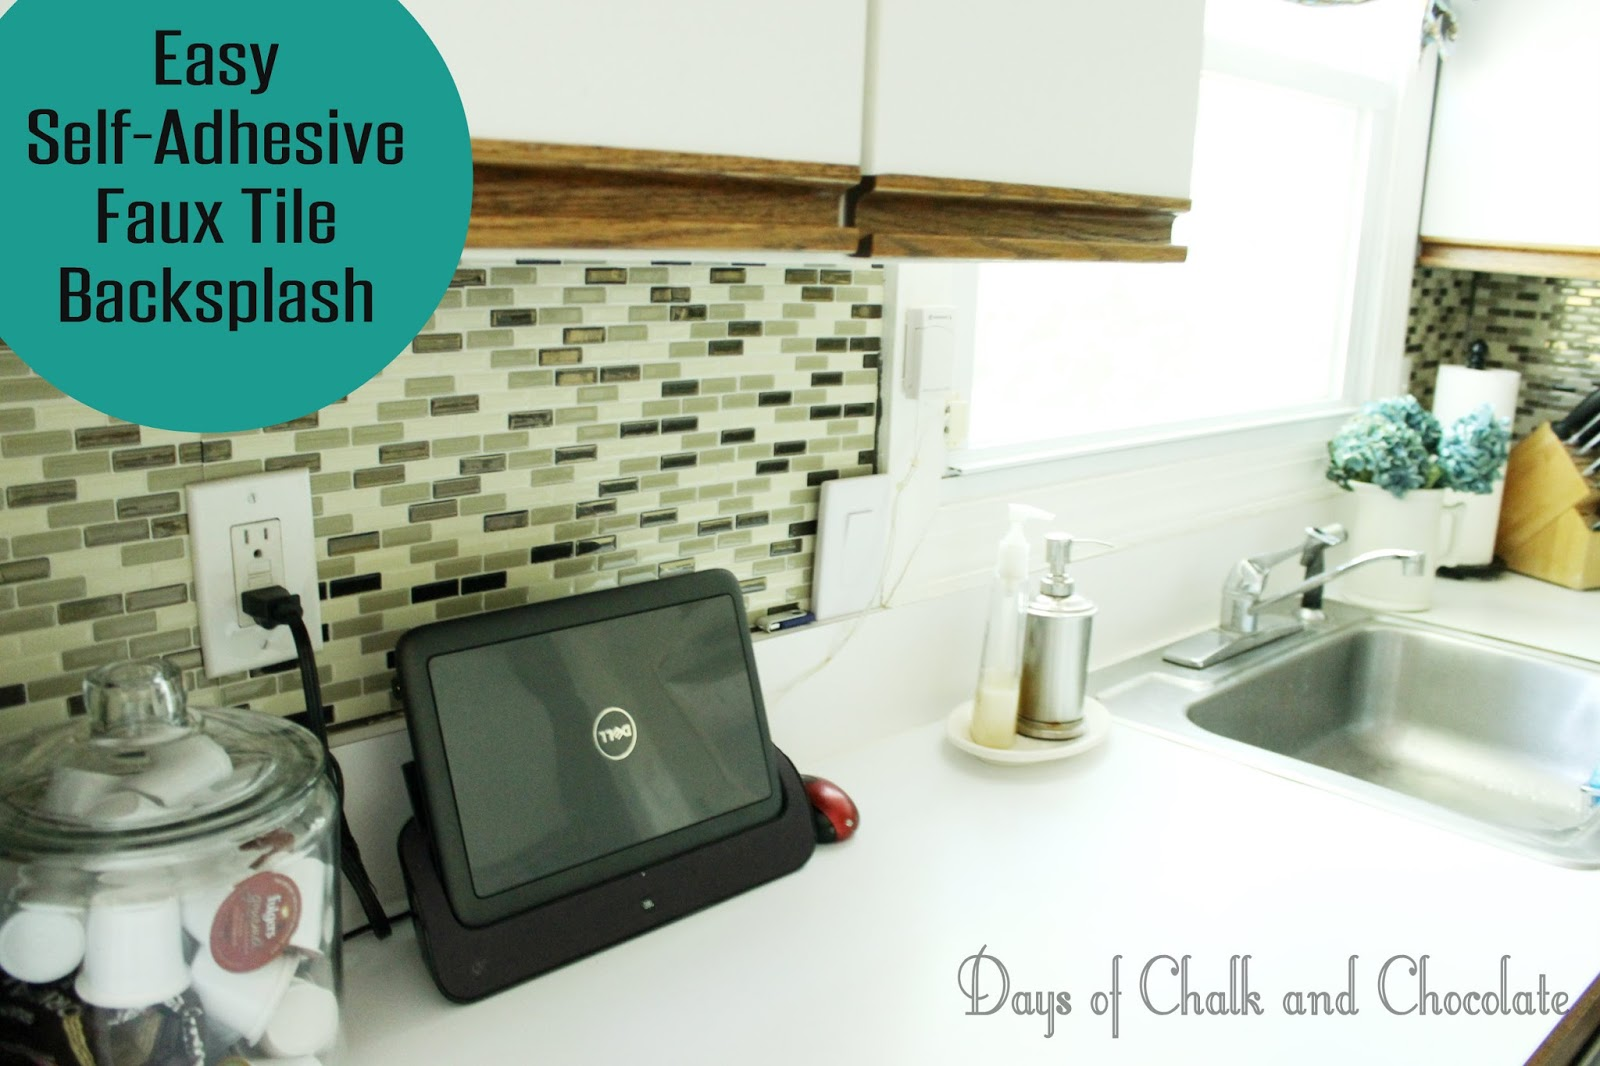 Easy Diy Self Adhesive Faux Tile Backsplash Days Of Chalk And Chocolate